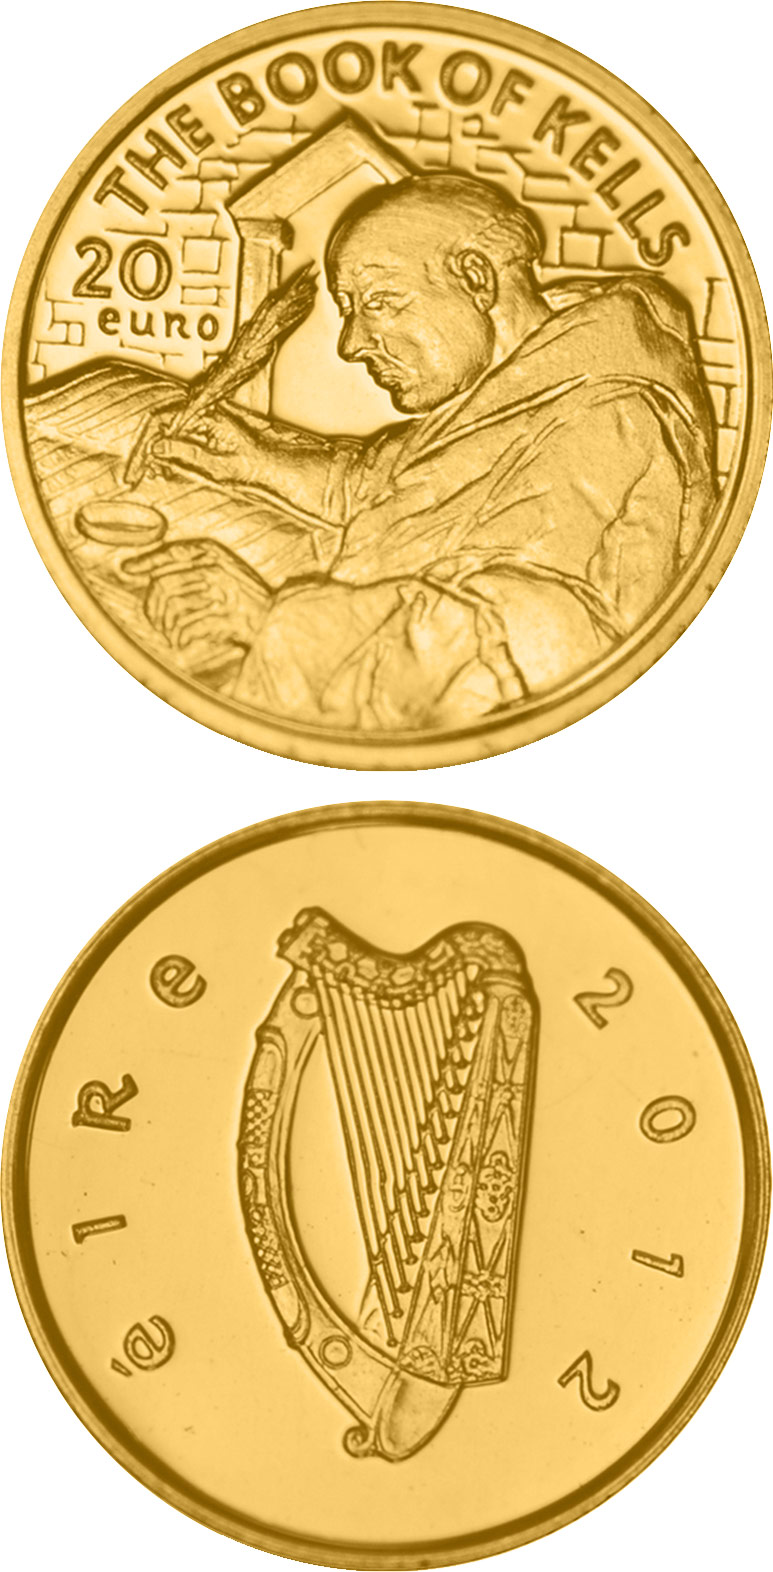 20 Of The Most Stunningly Beautiful Black Women From: Gold 20 Euro Coins. The 20 Euro Coin Series From Ireland